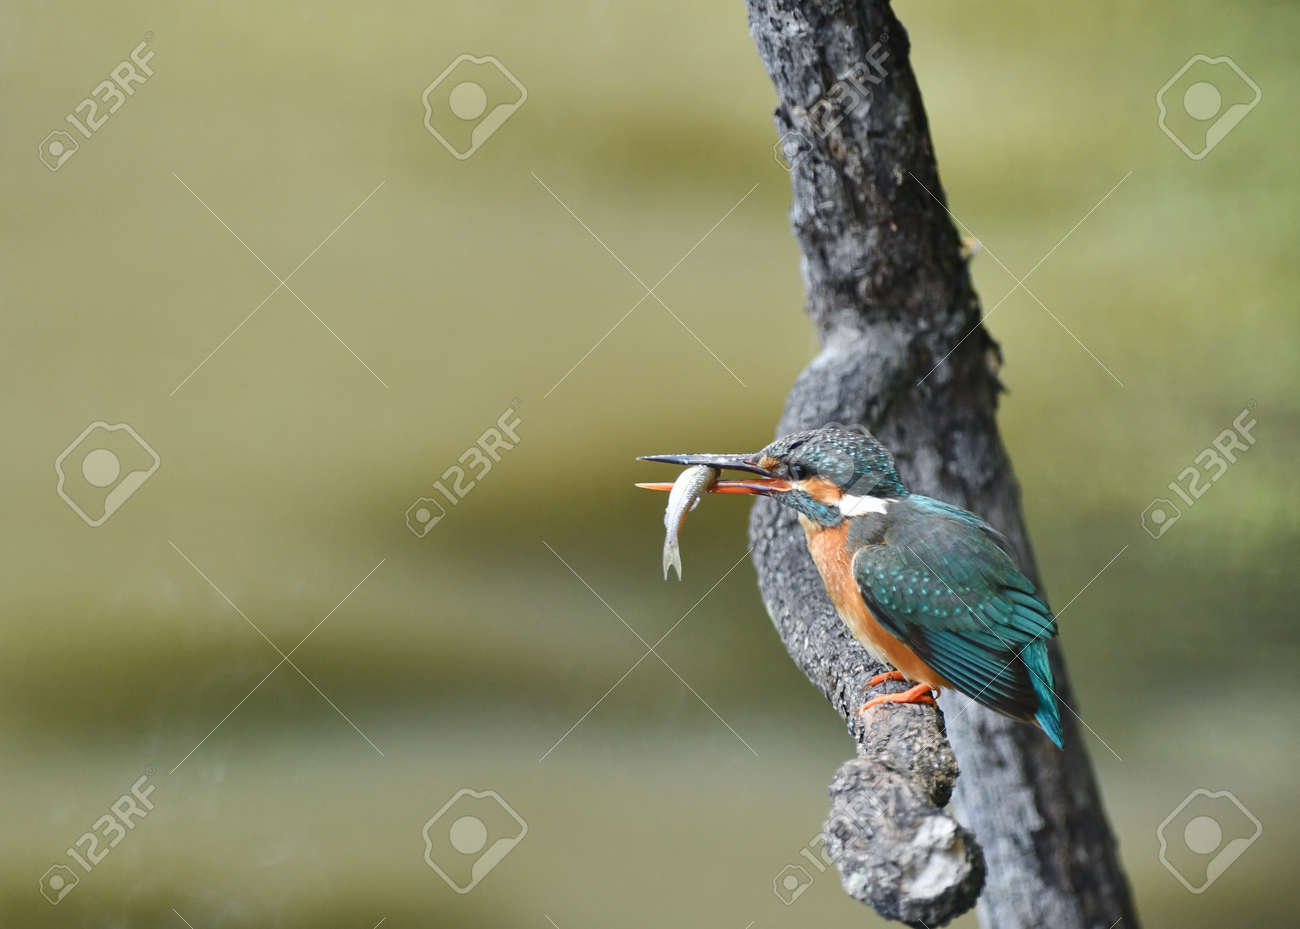 Kingfisher in the diet - 169410084